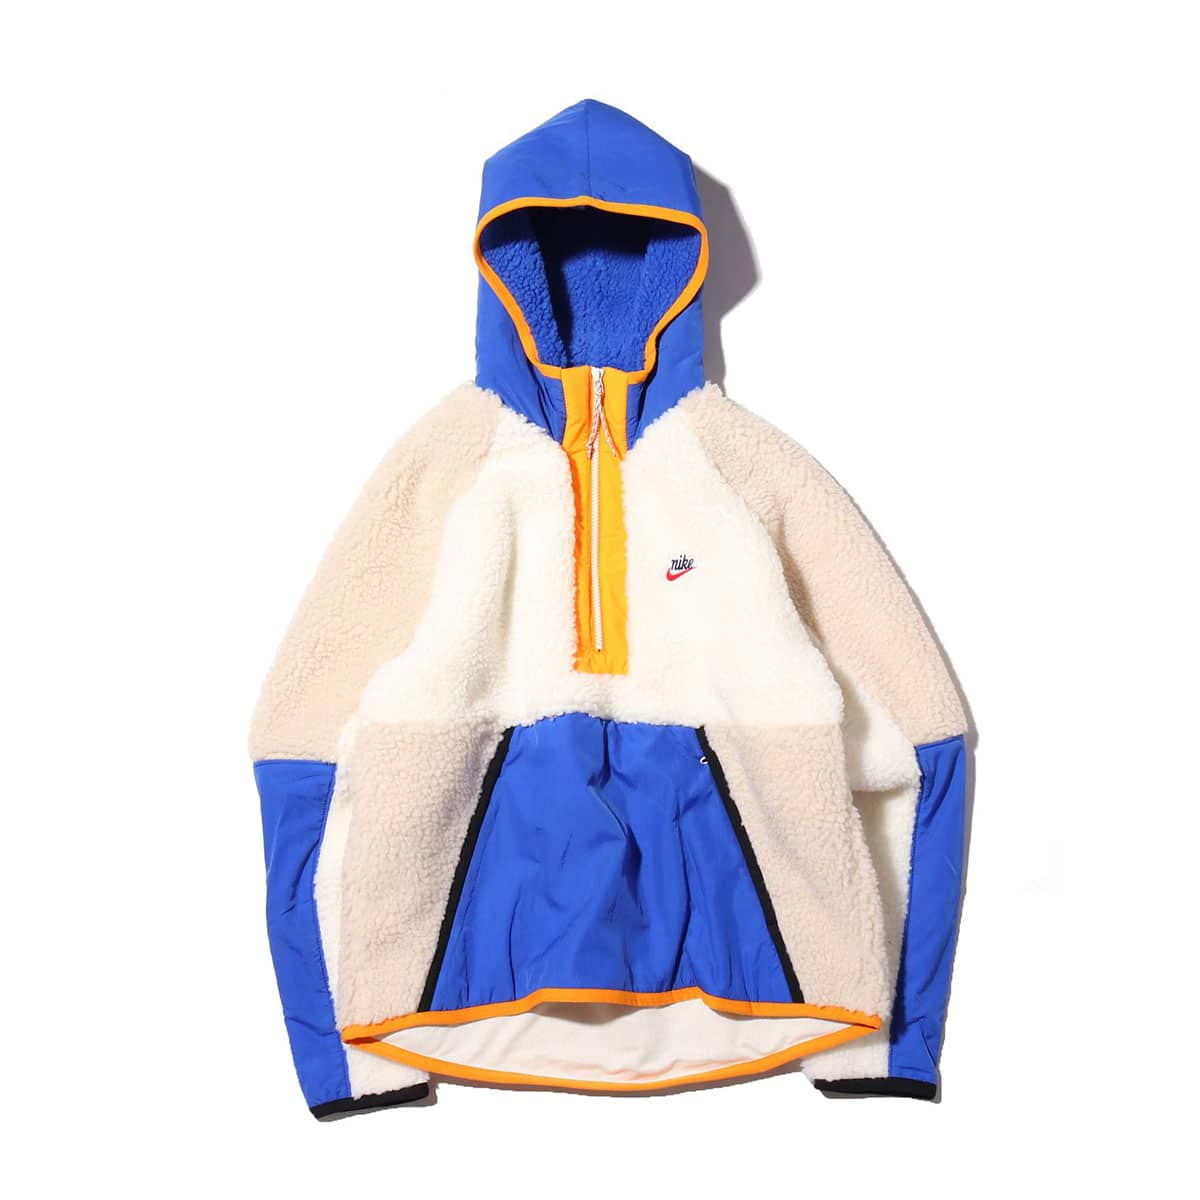 NIKE AS M NSW HE HOODIE HZ WINTER SAIL/GAME ROYAL/DESERT SAND 19HO-S_photo_large